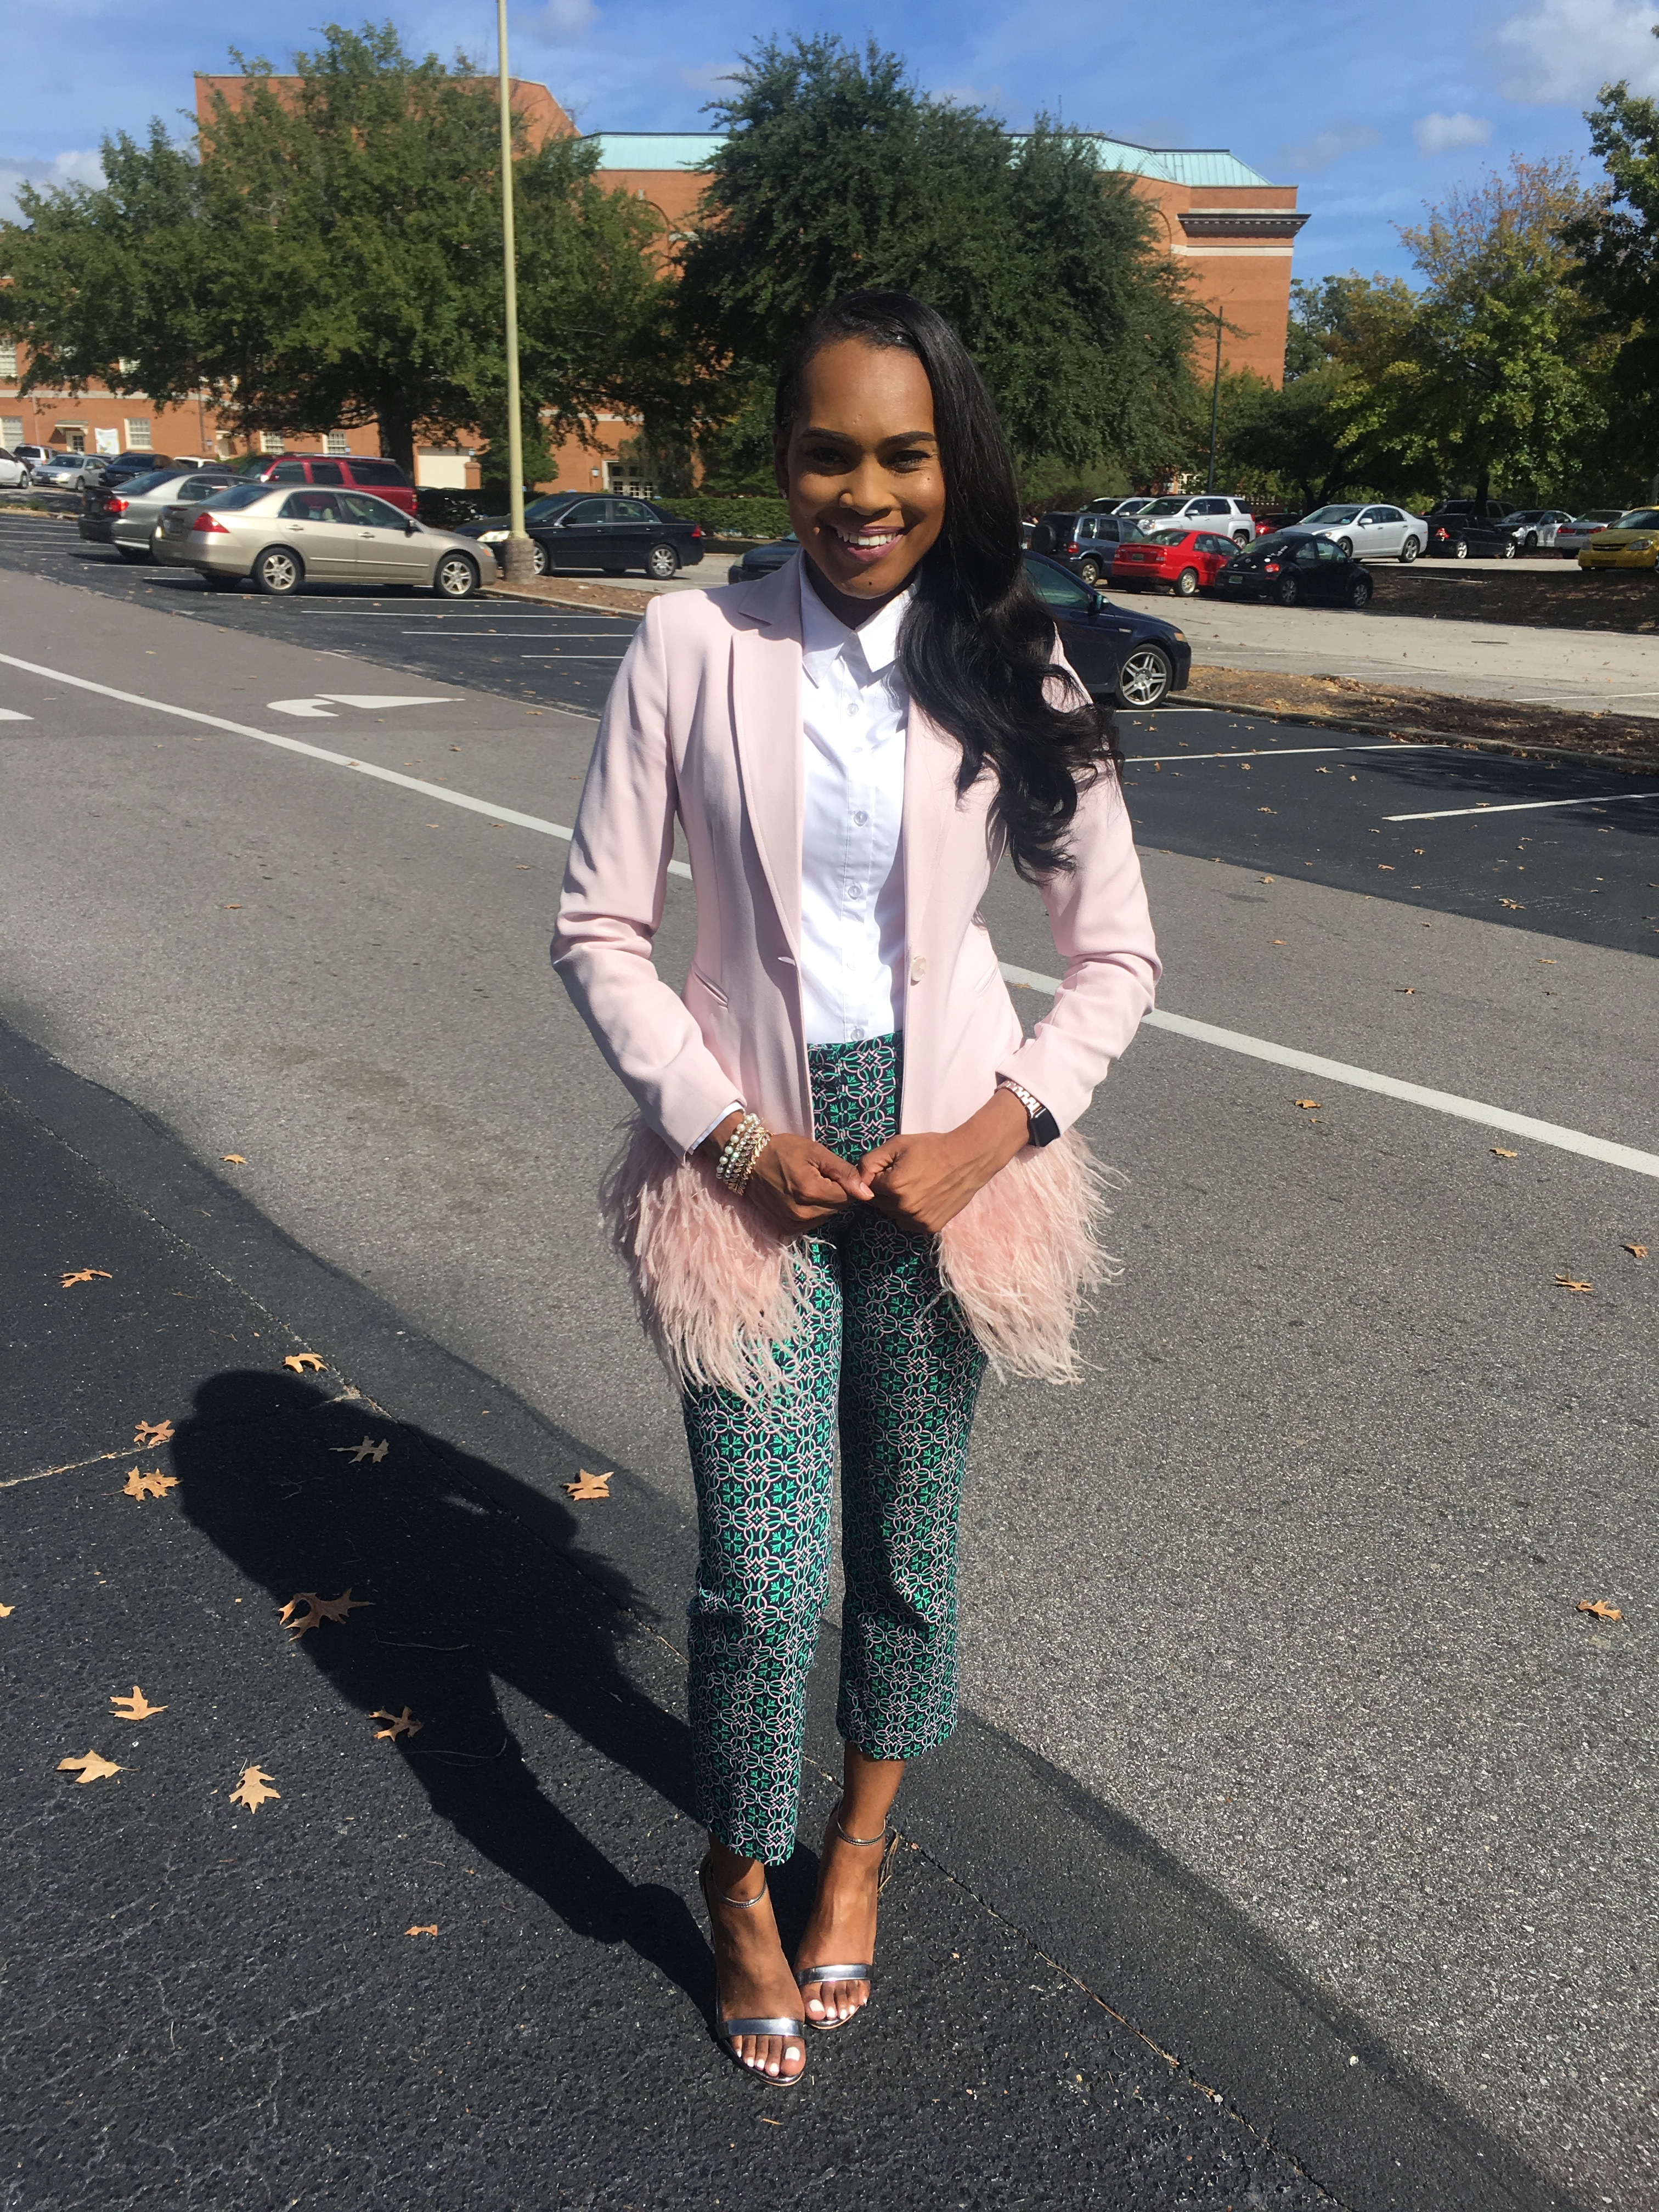 Style-Files-Thrifted-Printed-Jcrew-ankle-pants- white-thrifted-blouse-Pink-Gianni-Bini-Lizzy-Notch-Lapel-Collar-Feather-Trim-Solid-Crepe-Blazer-feather-hem-blazer-Birmingham-Association-of-black-journalist-college-panel-event-oohlalablog-14